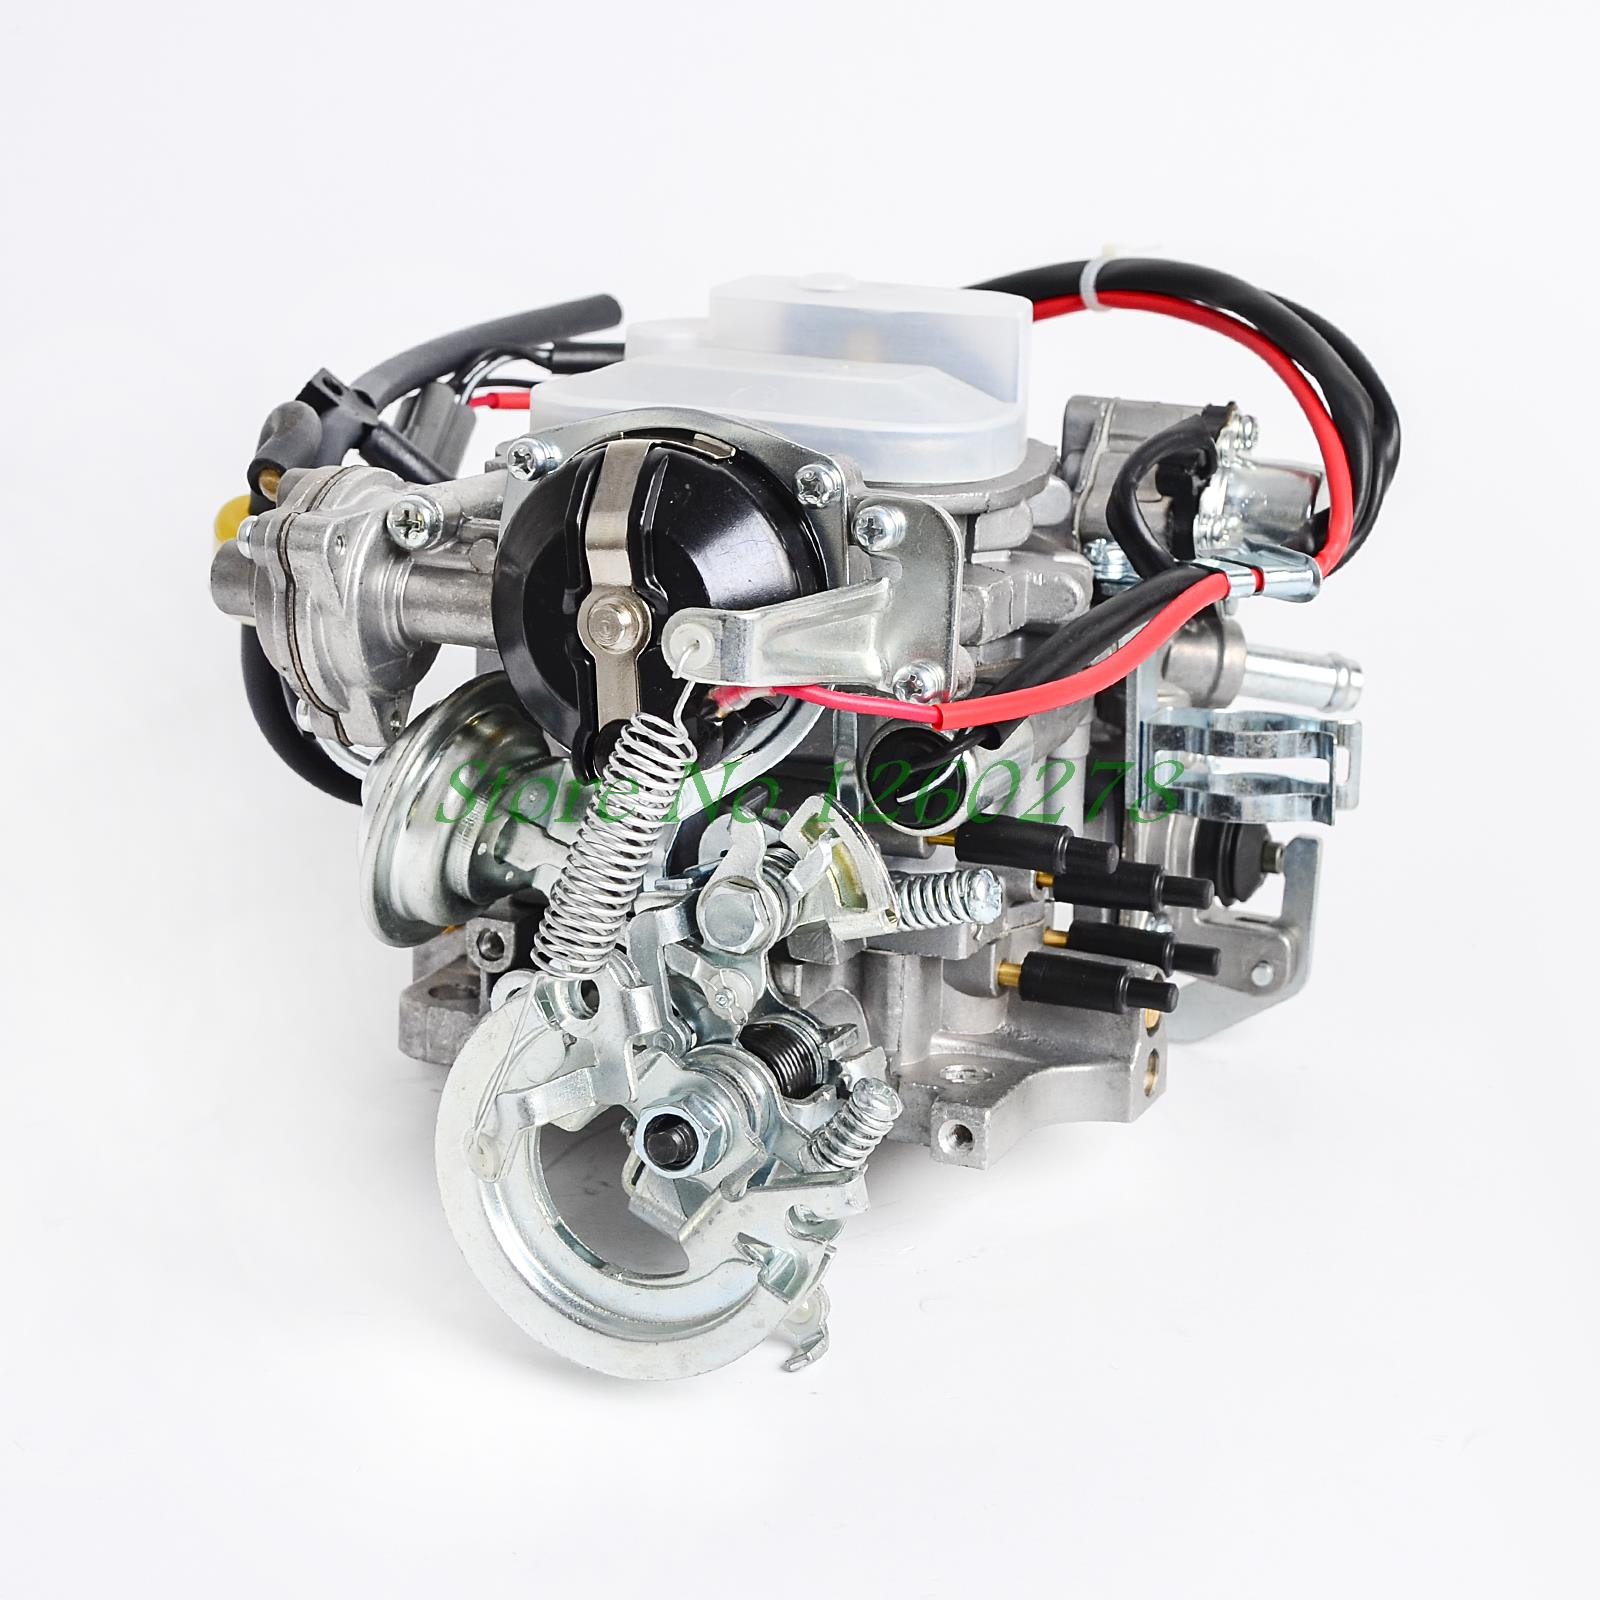 New High Quality CARBIE CARB Carby Carburetor for TOYOTA 4 RUNNER HILUX 21R 22R 21100-35530 21100-35520 new carburetor for toyota 3k corolla starlet trueno 21100 24035 21100 24034